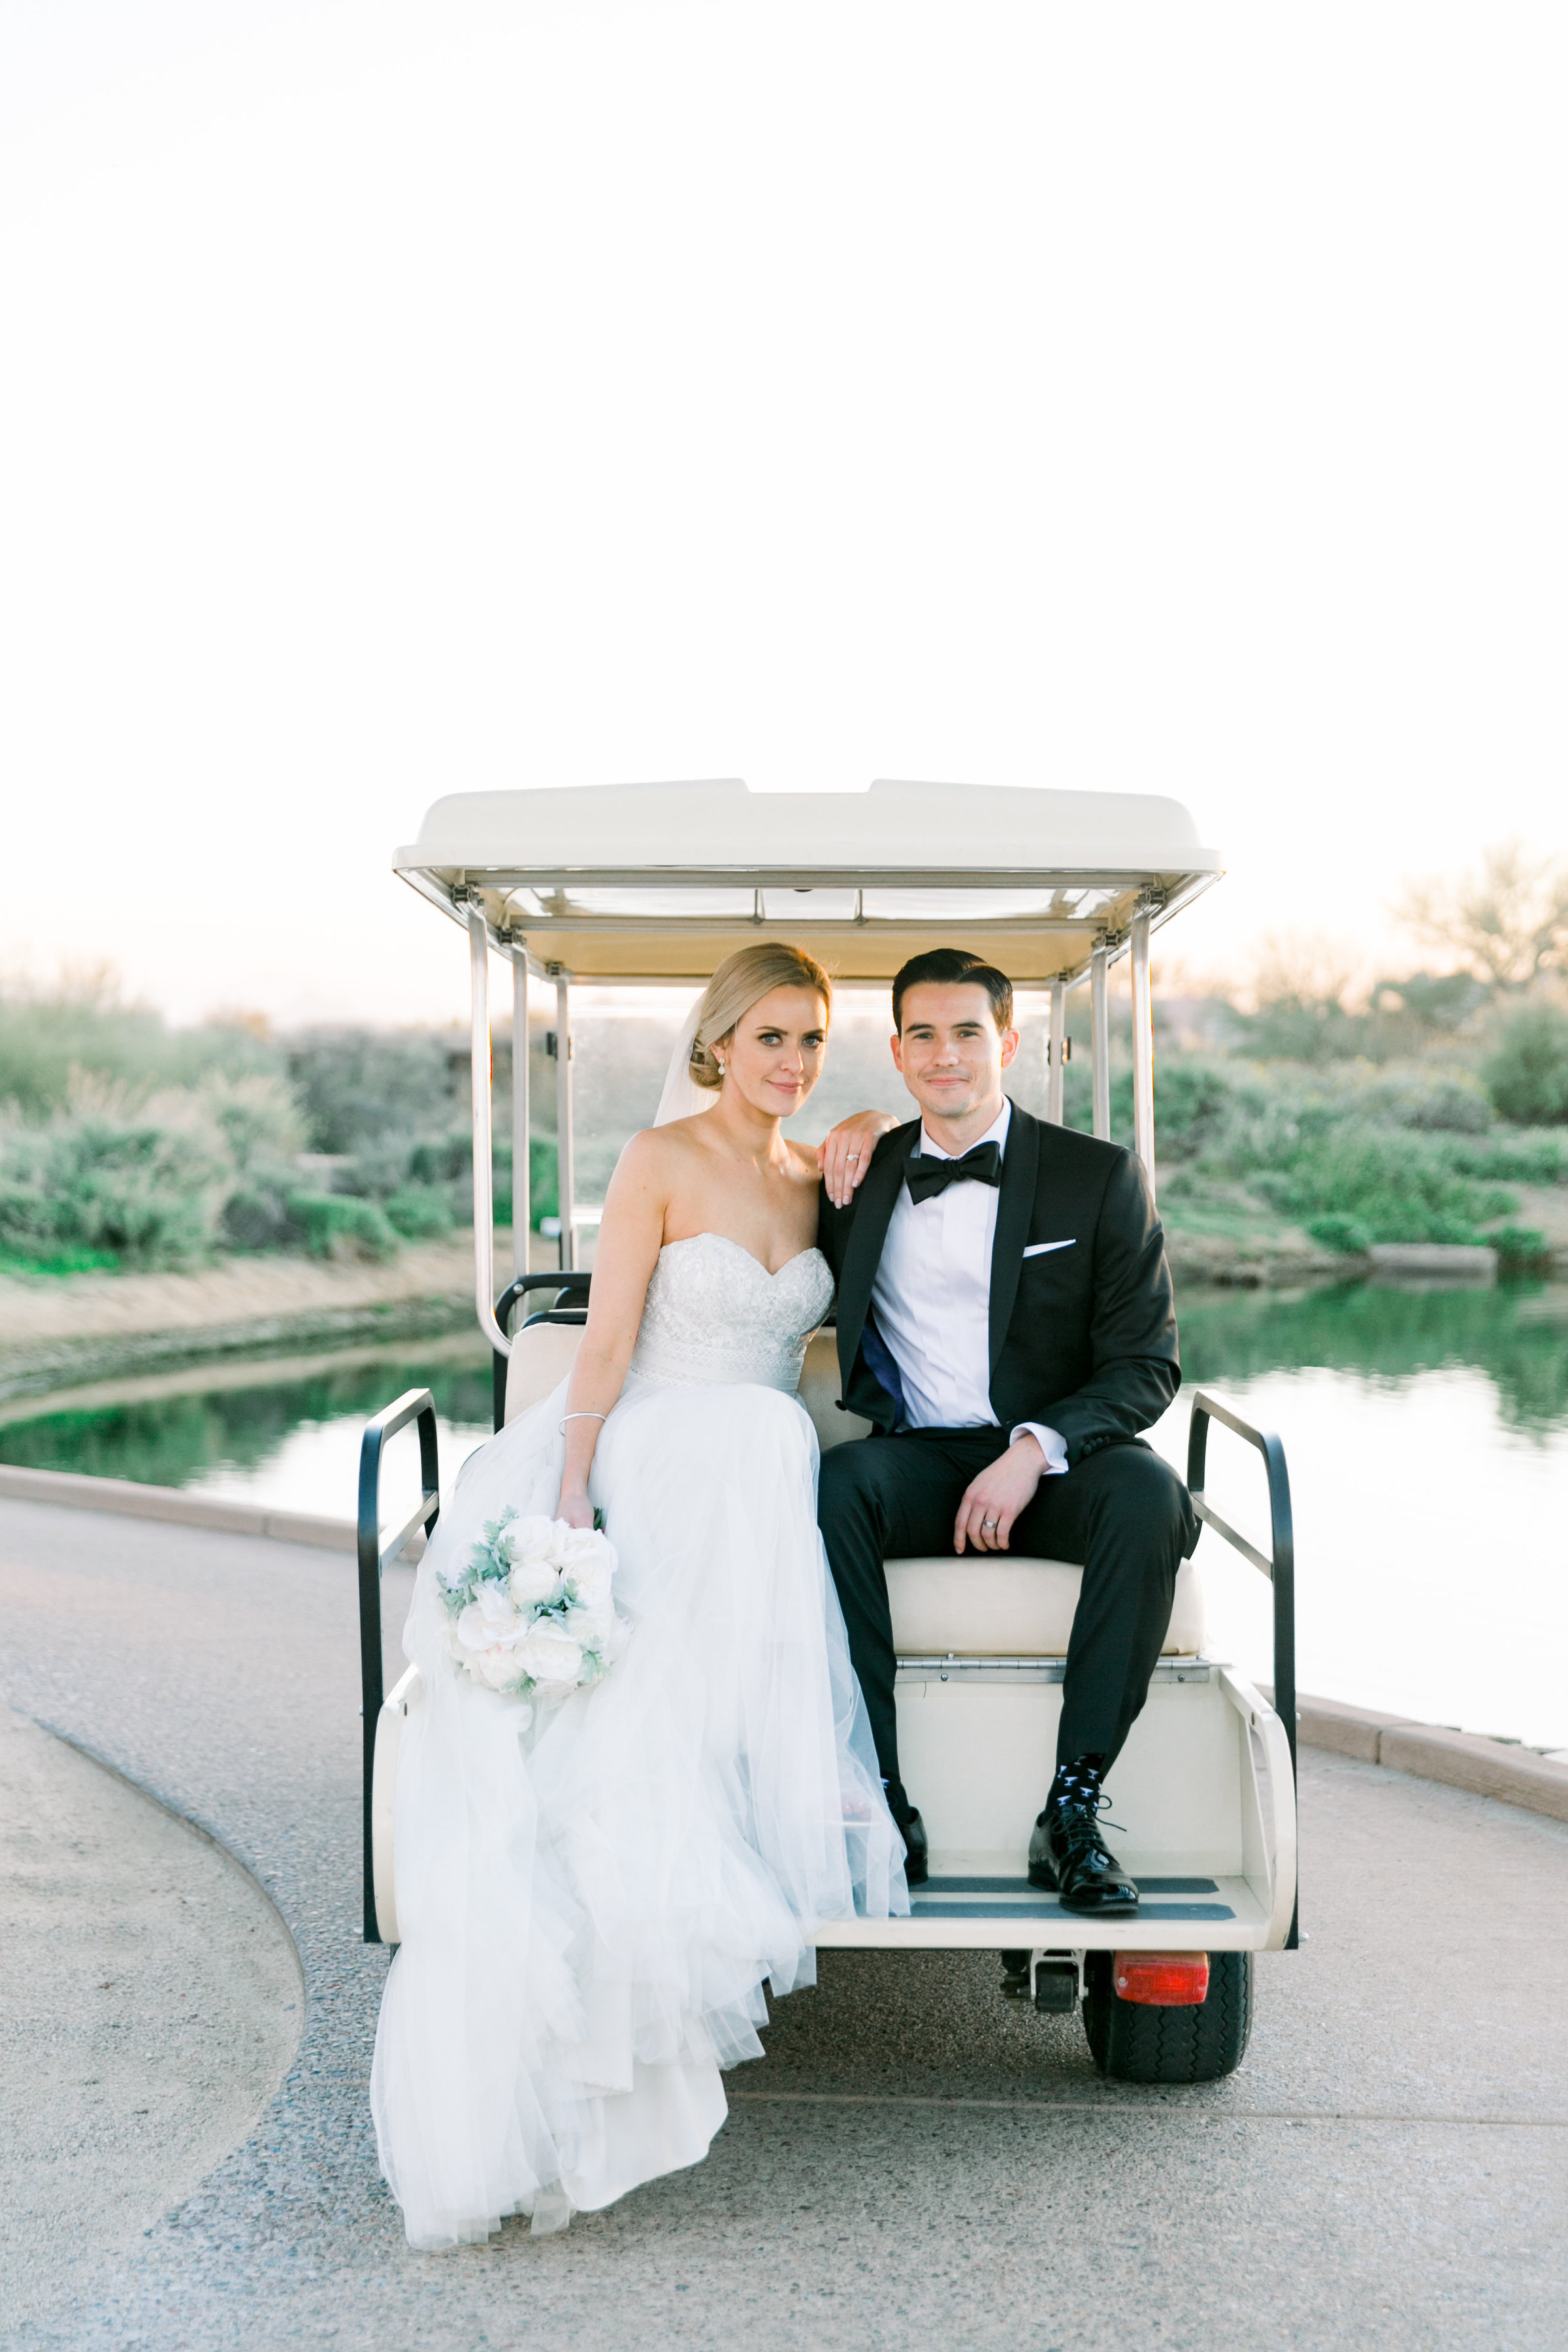 Karlie Colleen Photography - Arizona Wedding at The Troon Scottsdale Country Club - Paige & Shane -738